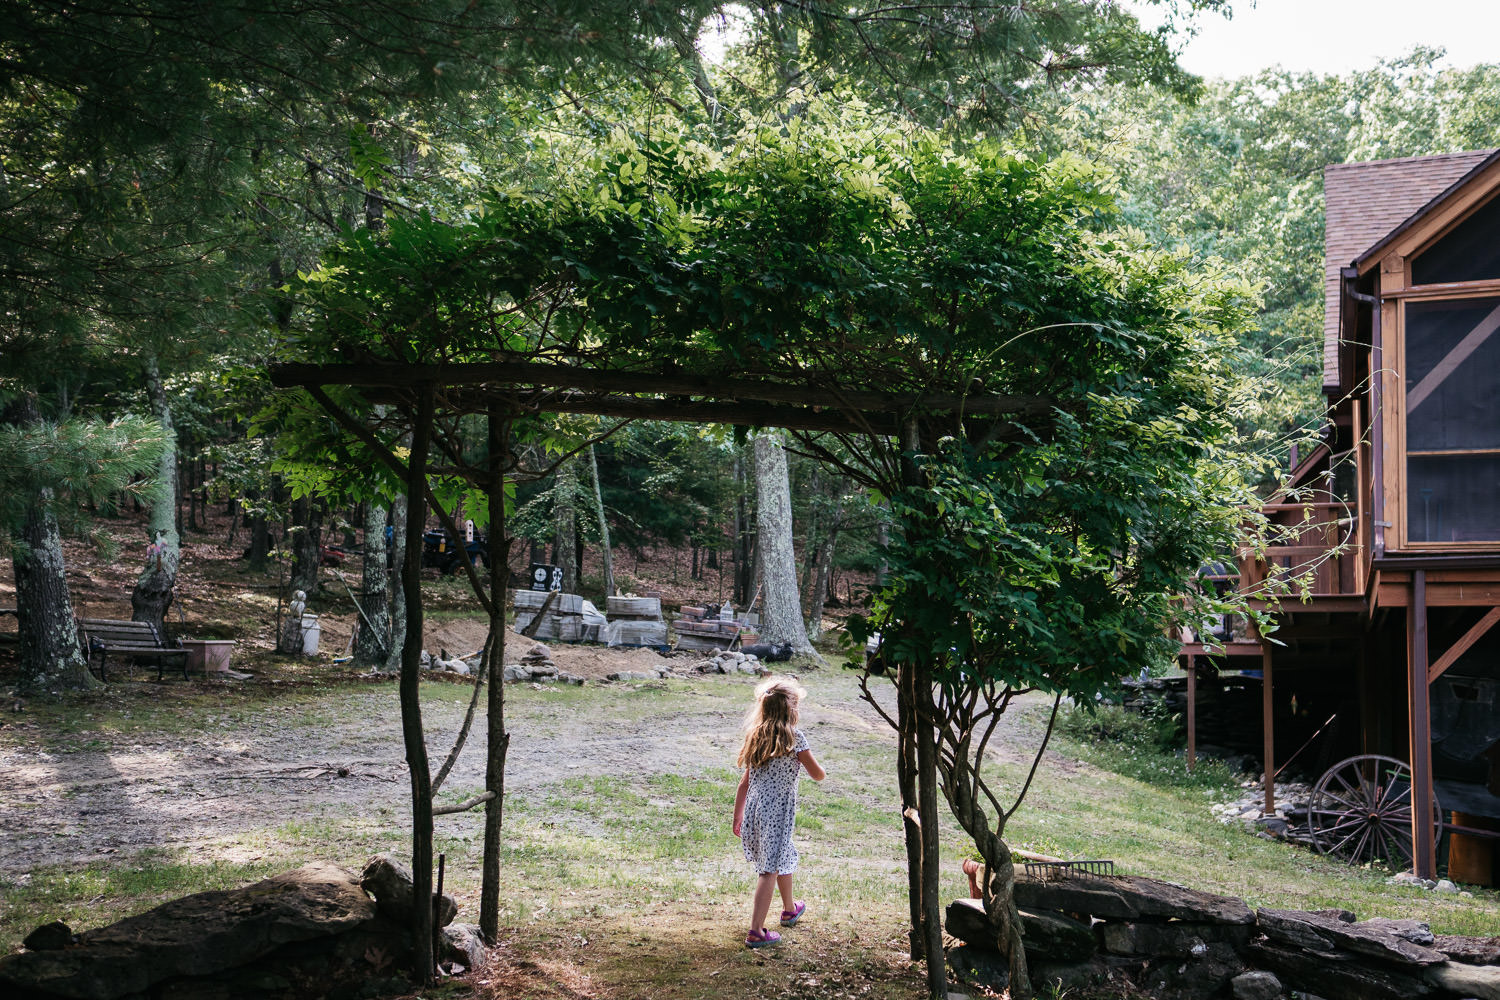 A little girl walks through an archway covered in leaves.